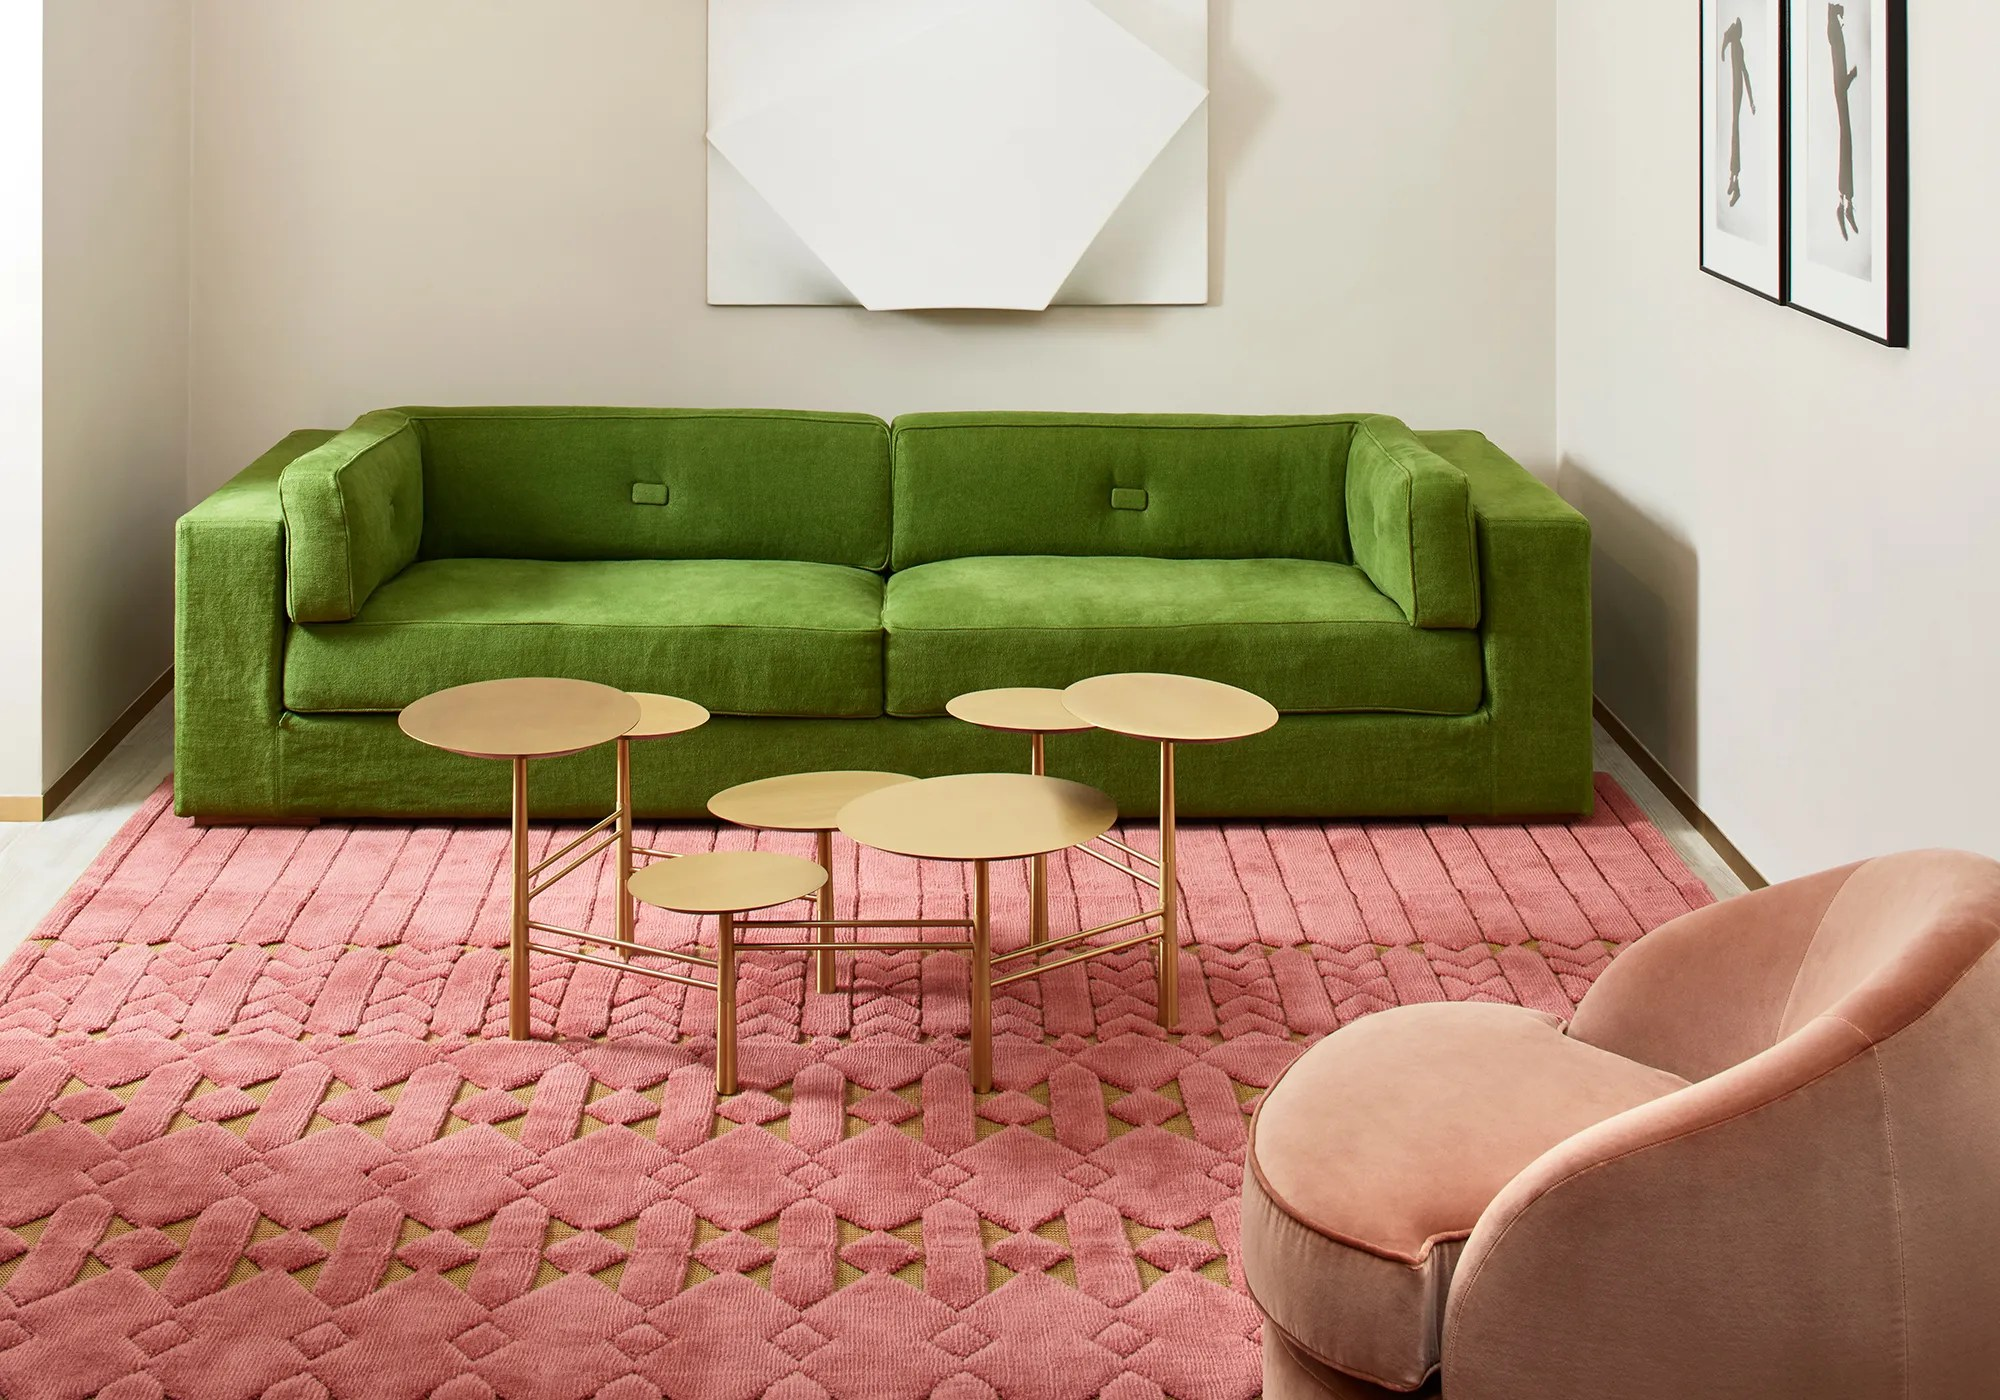 Design Interieur Master A Look At Interior Designer India Mahdavi S New Collection Of